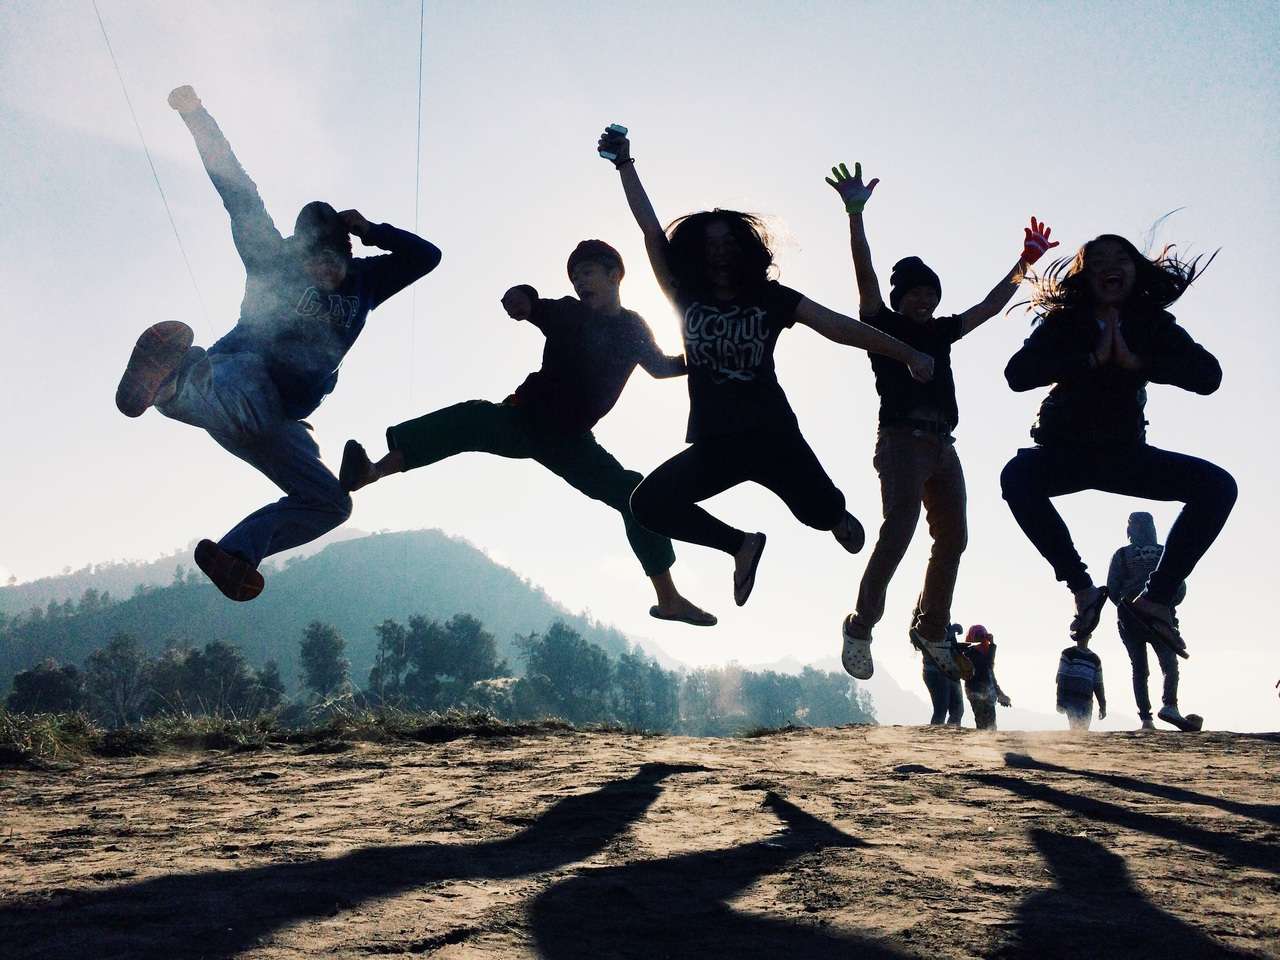 adventure, amazing, black, bromo, coolkids, crazy, freezing, friendship, indonesia, indonesian, jump, landscape, mountain, pose, shadows, silhouette, tumblr, squad, iphone5s, bestfriend